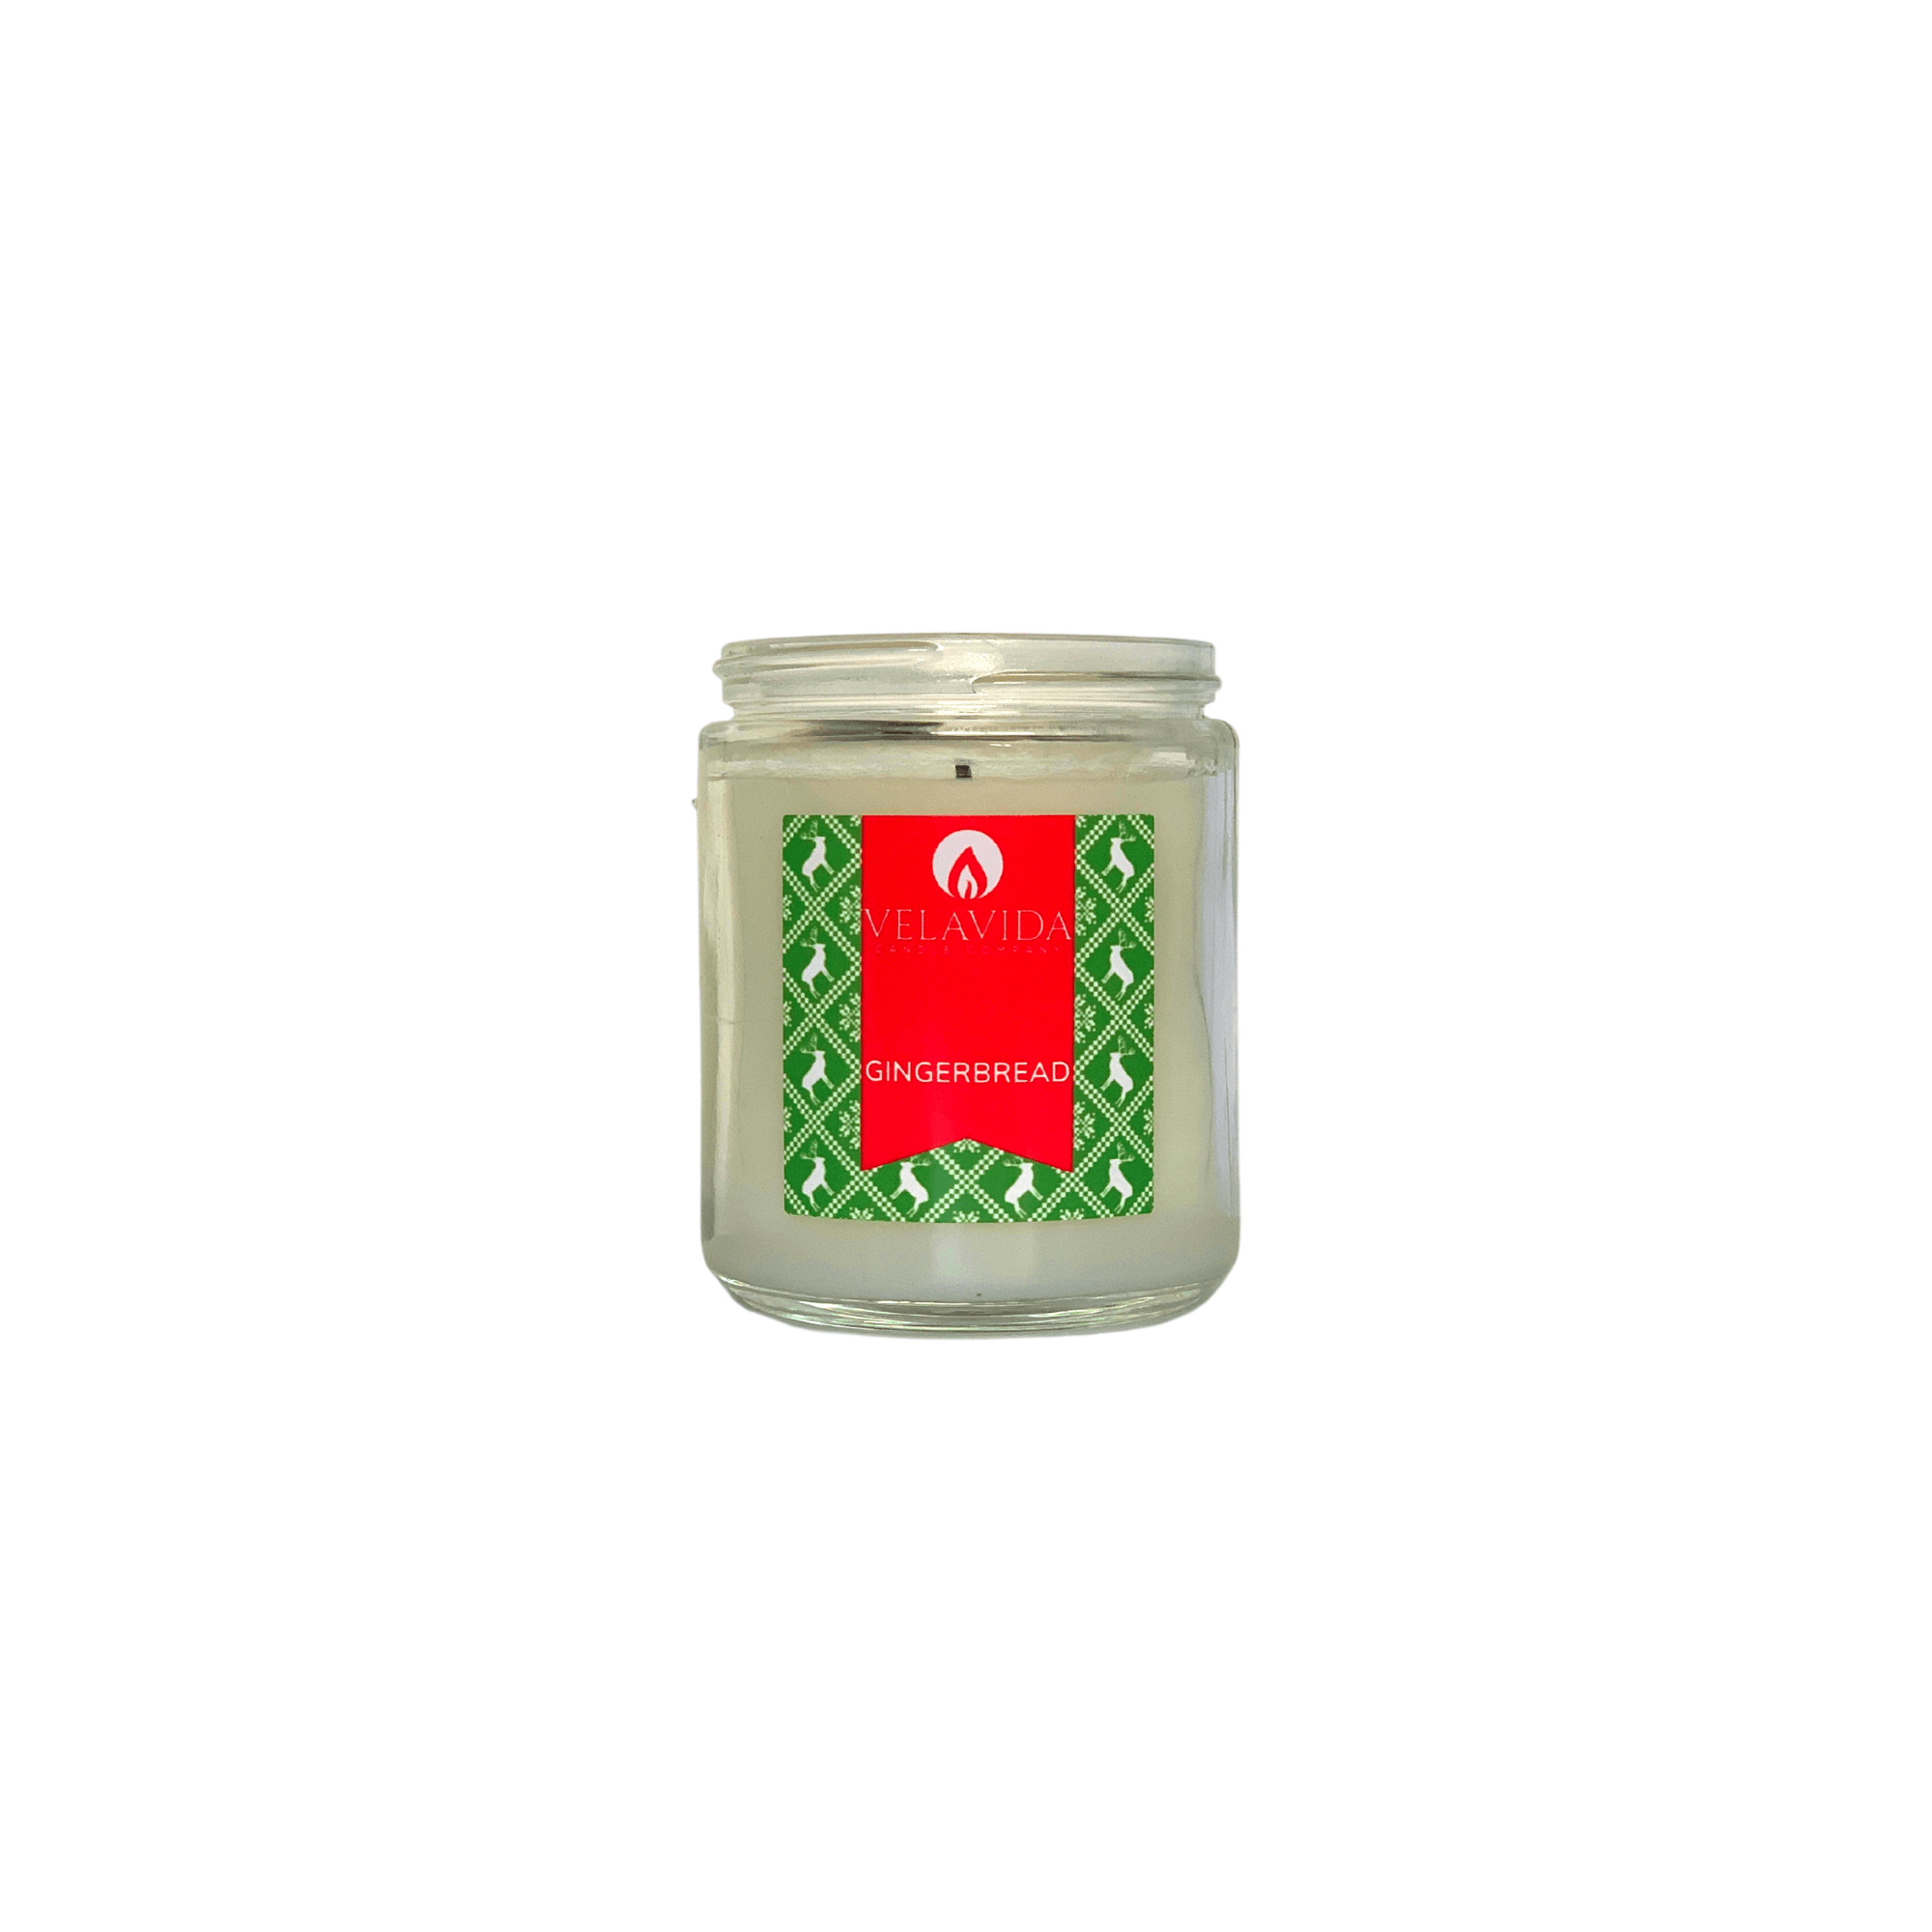 Gingerbread Candle 8oz.